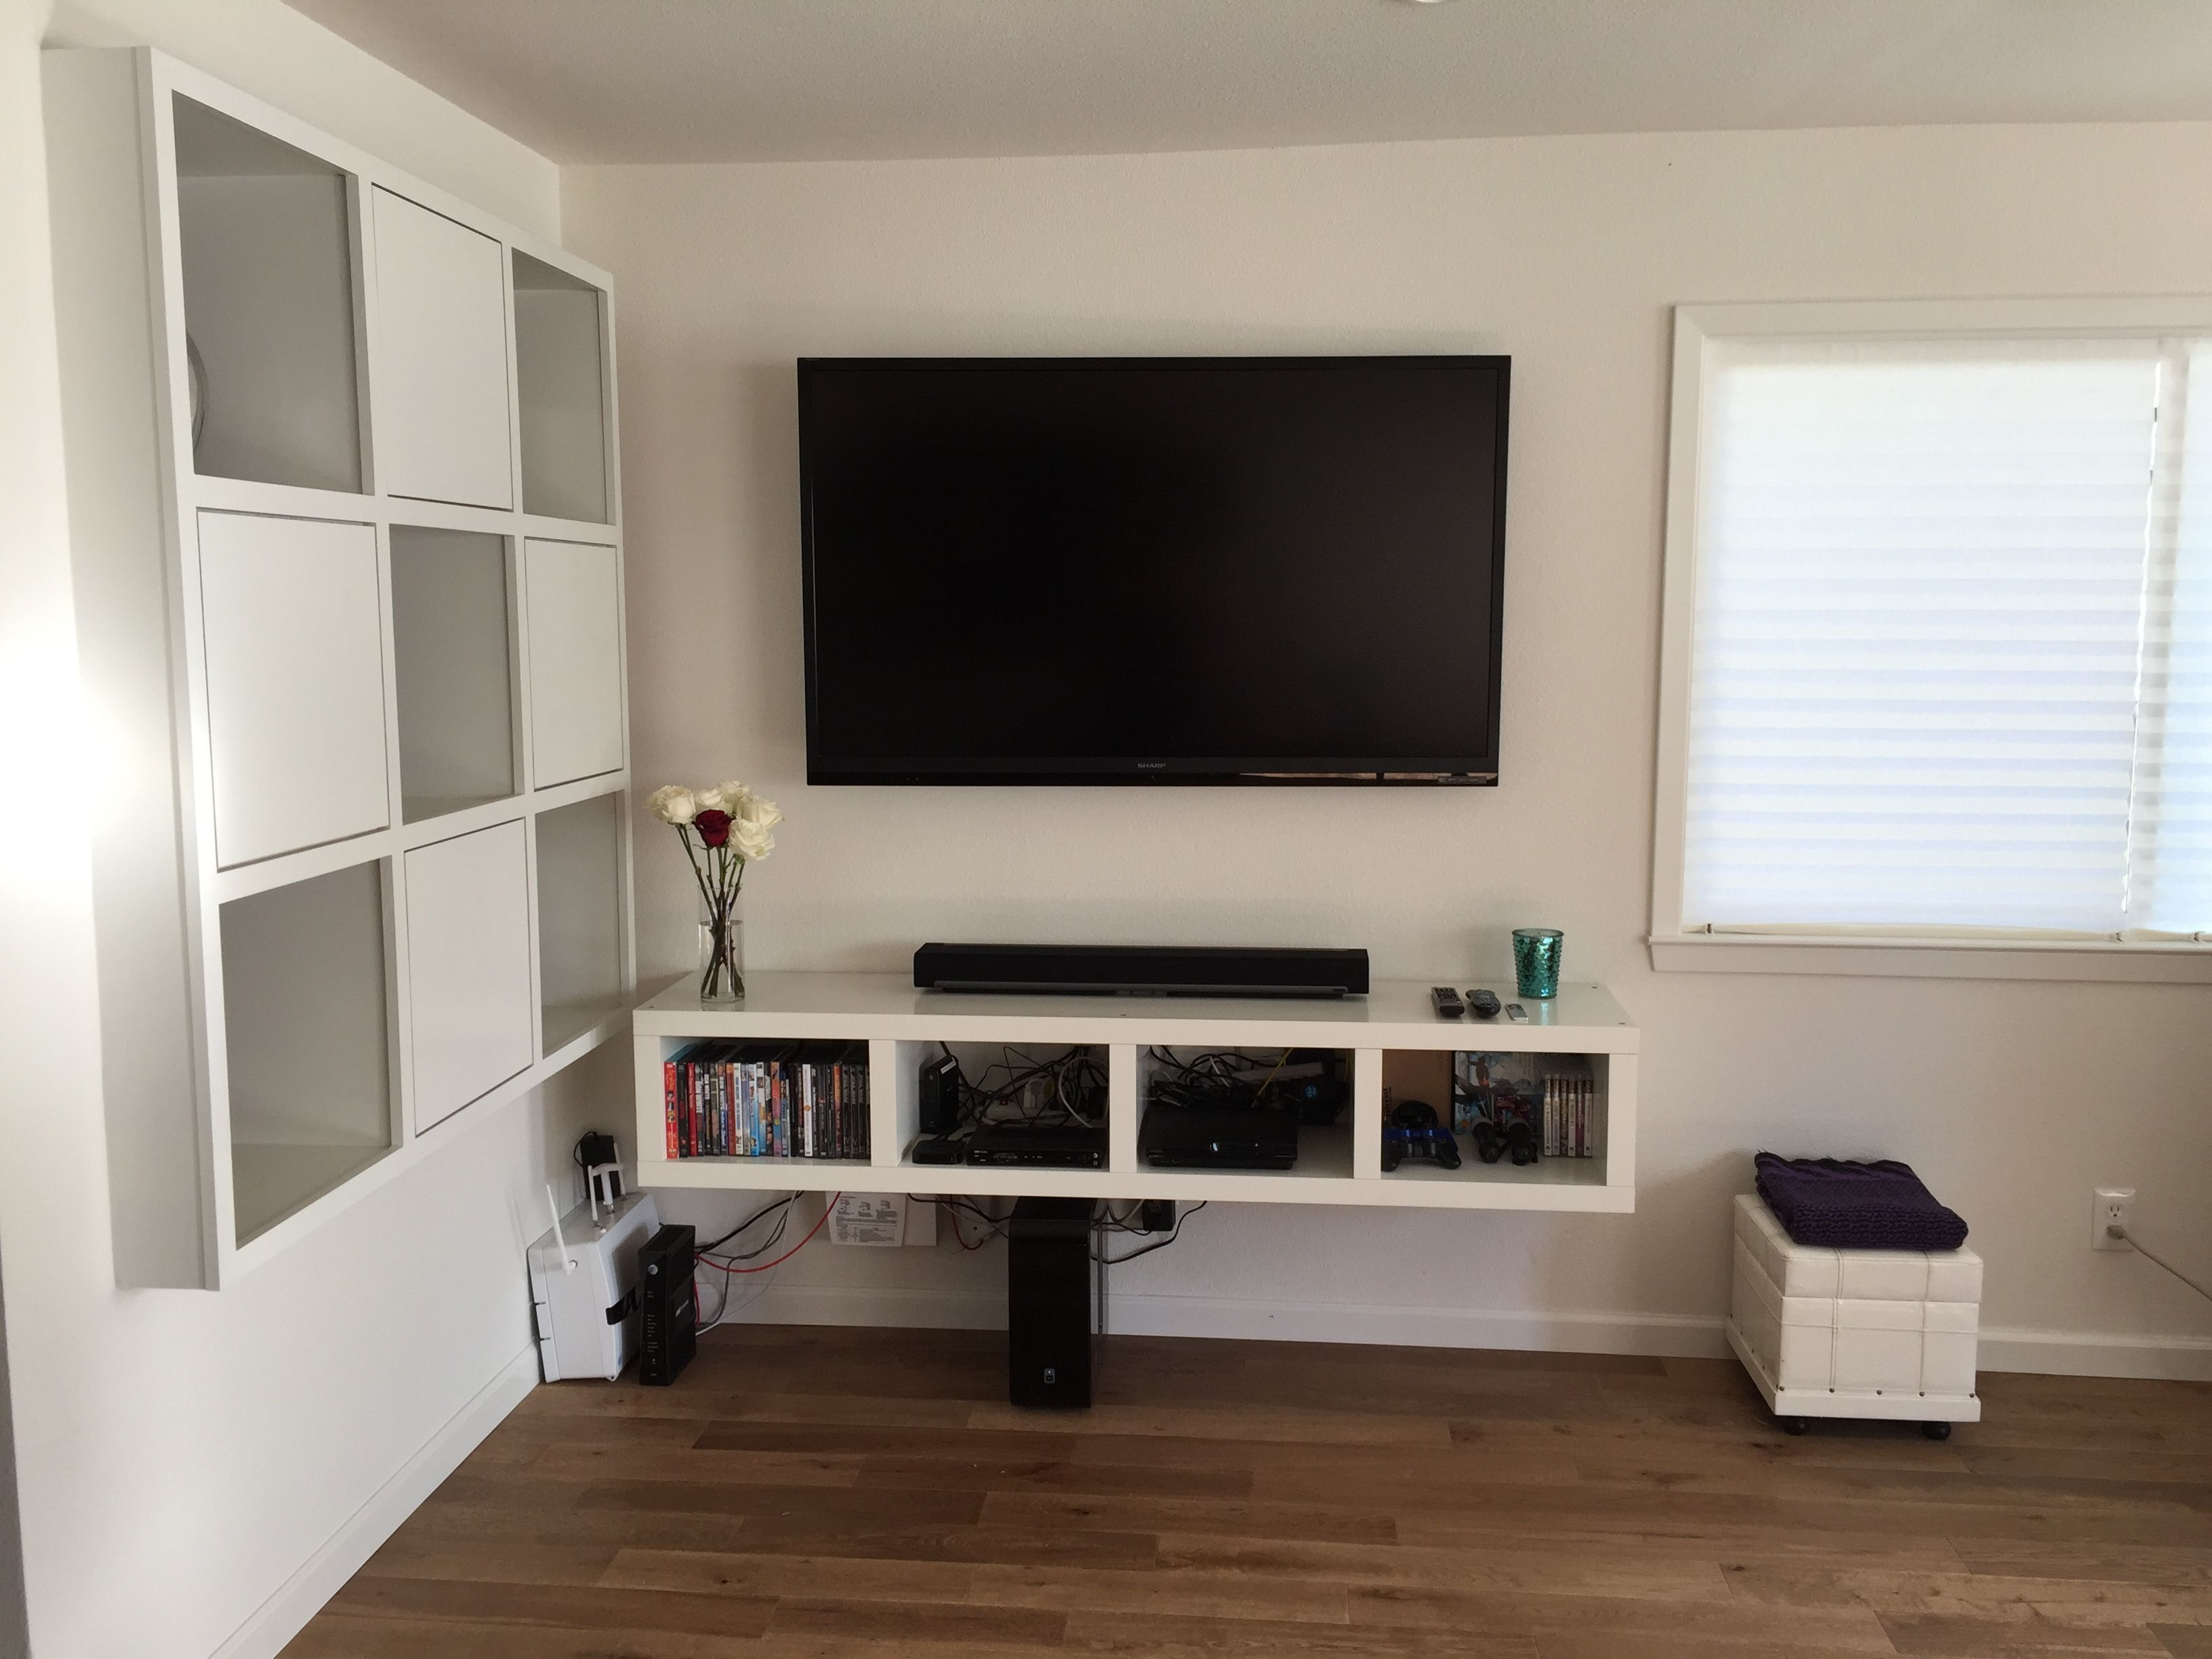 ikea bookshelf converted to floating tv stand expedit lack lifehack ikeahack